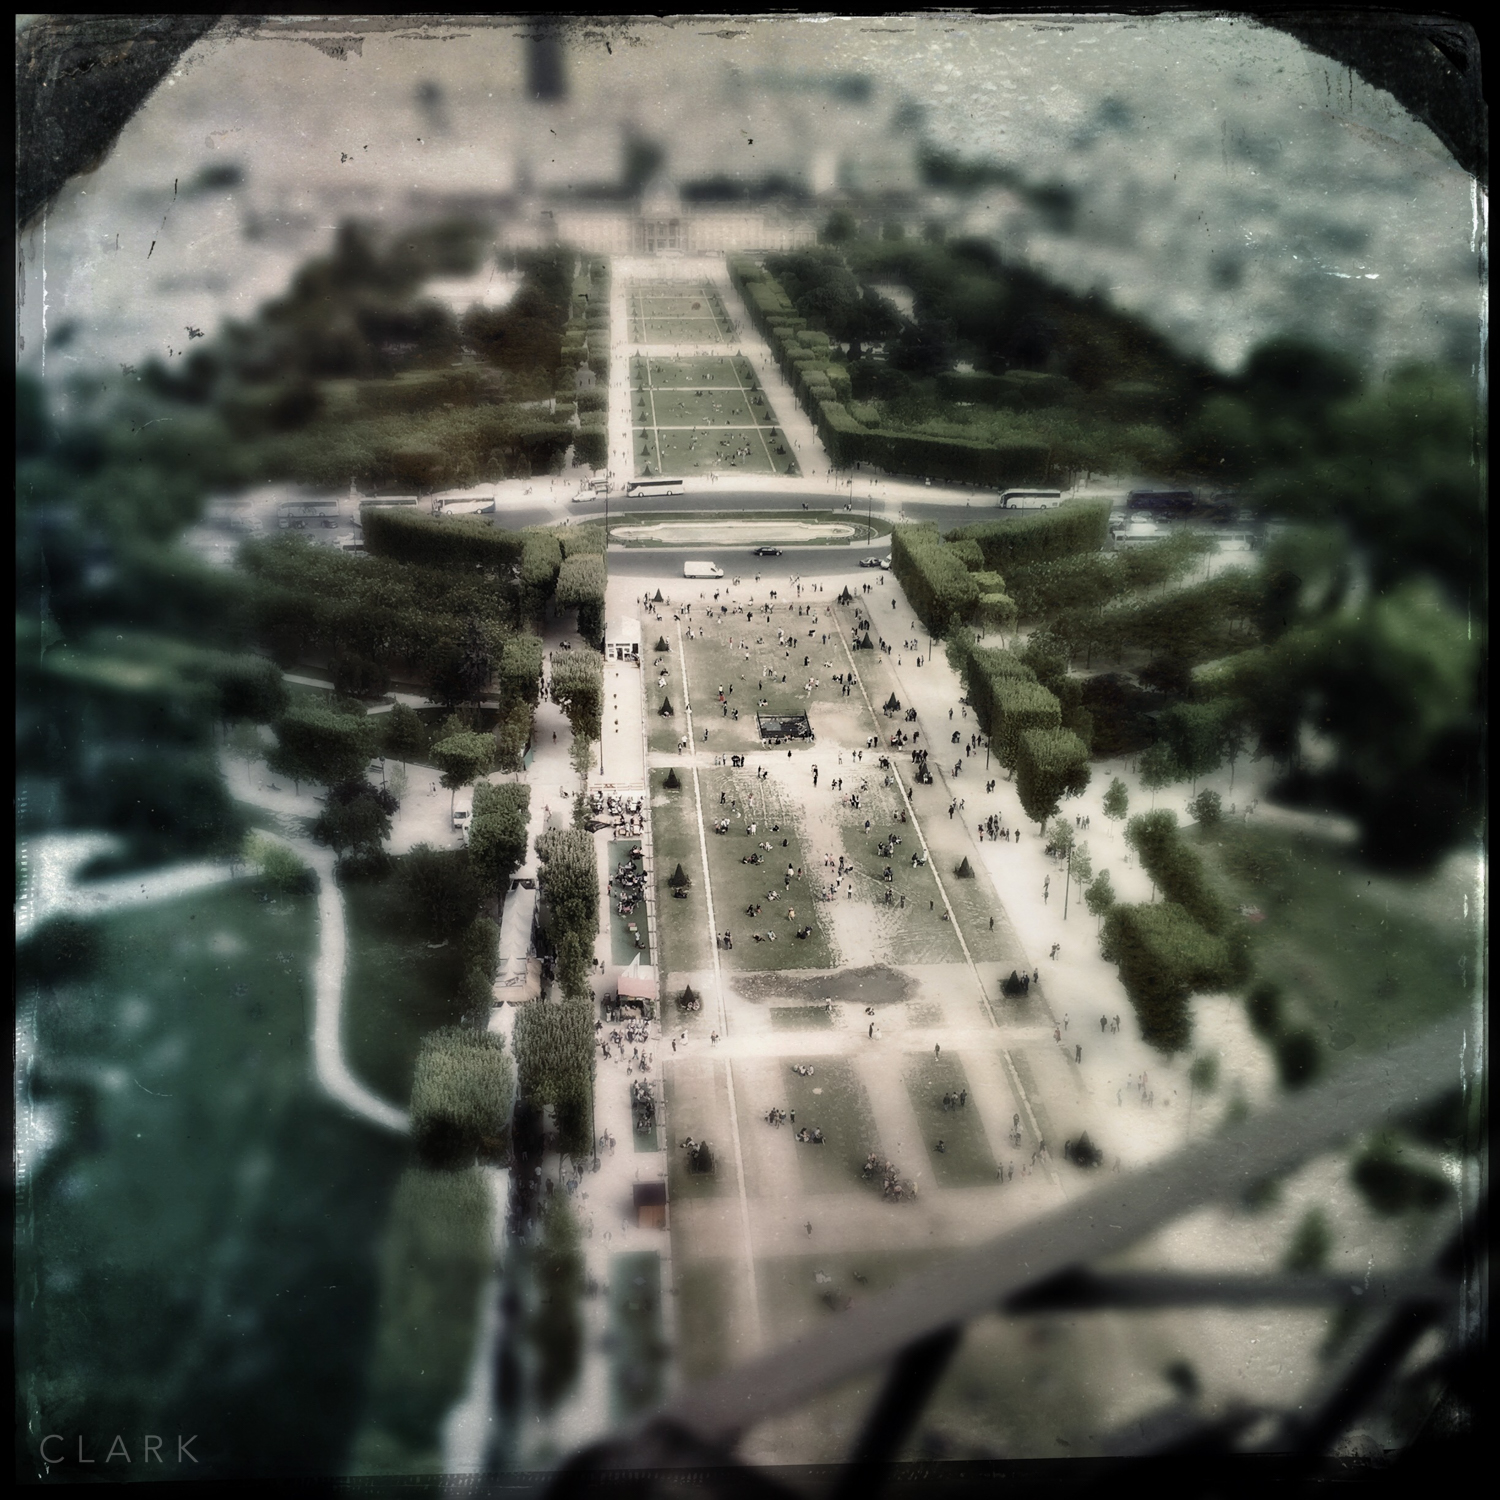 010_DerekClarkPhoto-Paris_iPhone.jpg